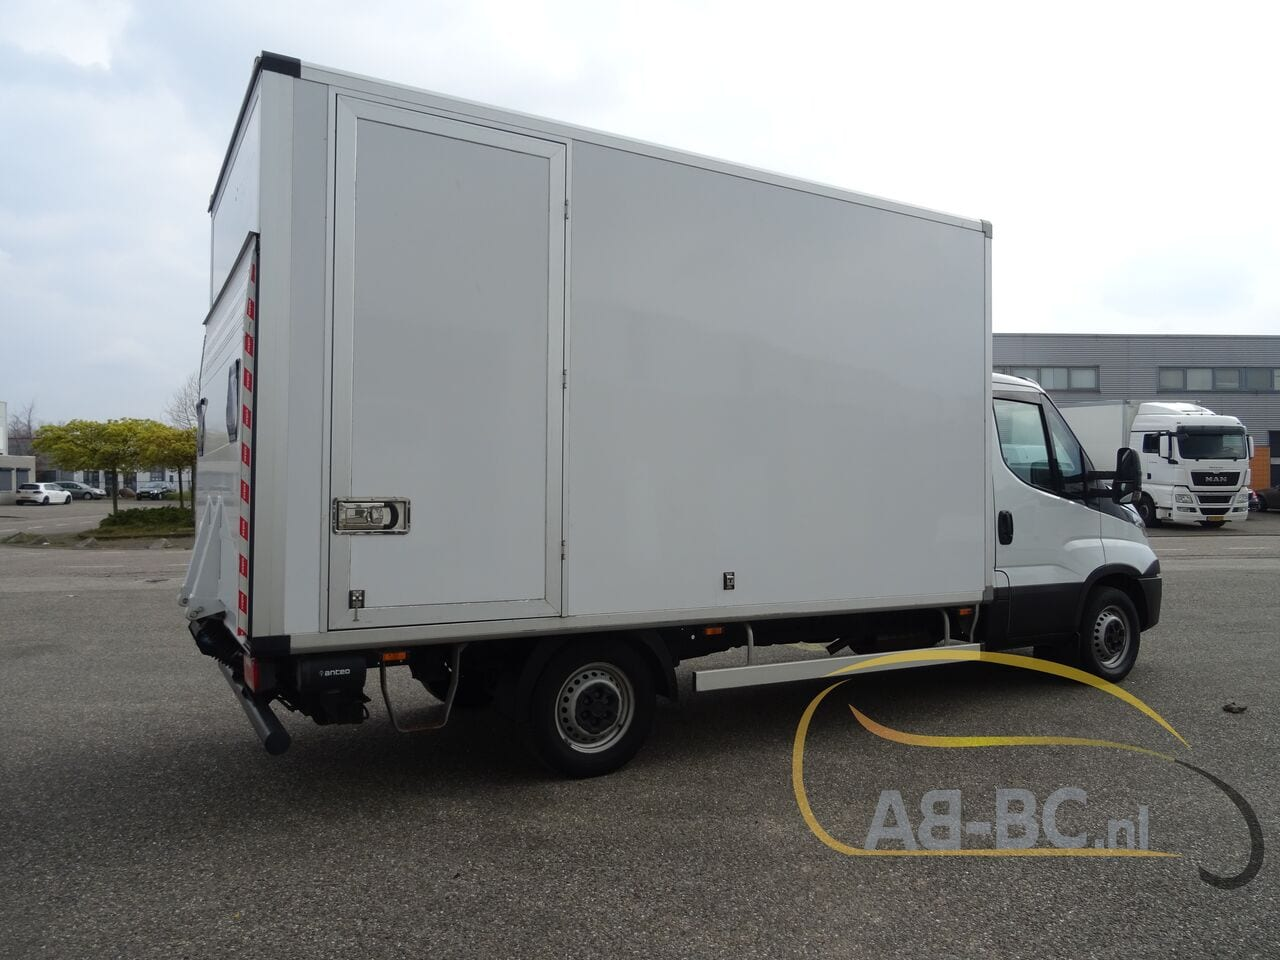 commercial-vehicle-box-truck-3-5tIVECO-Daily-35S14-EURO-6---1618841991820186250_big_aa19aeea12d1738f841fb77442274595--20081111411660340700